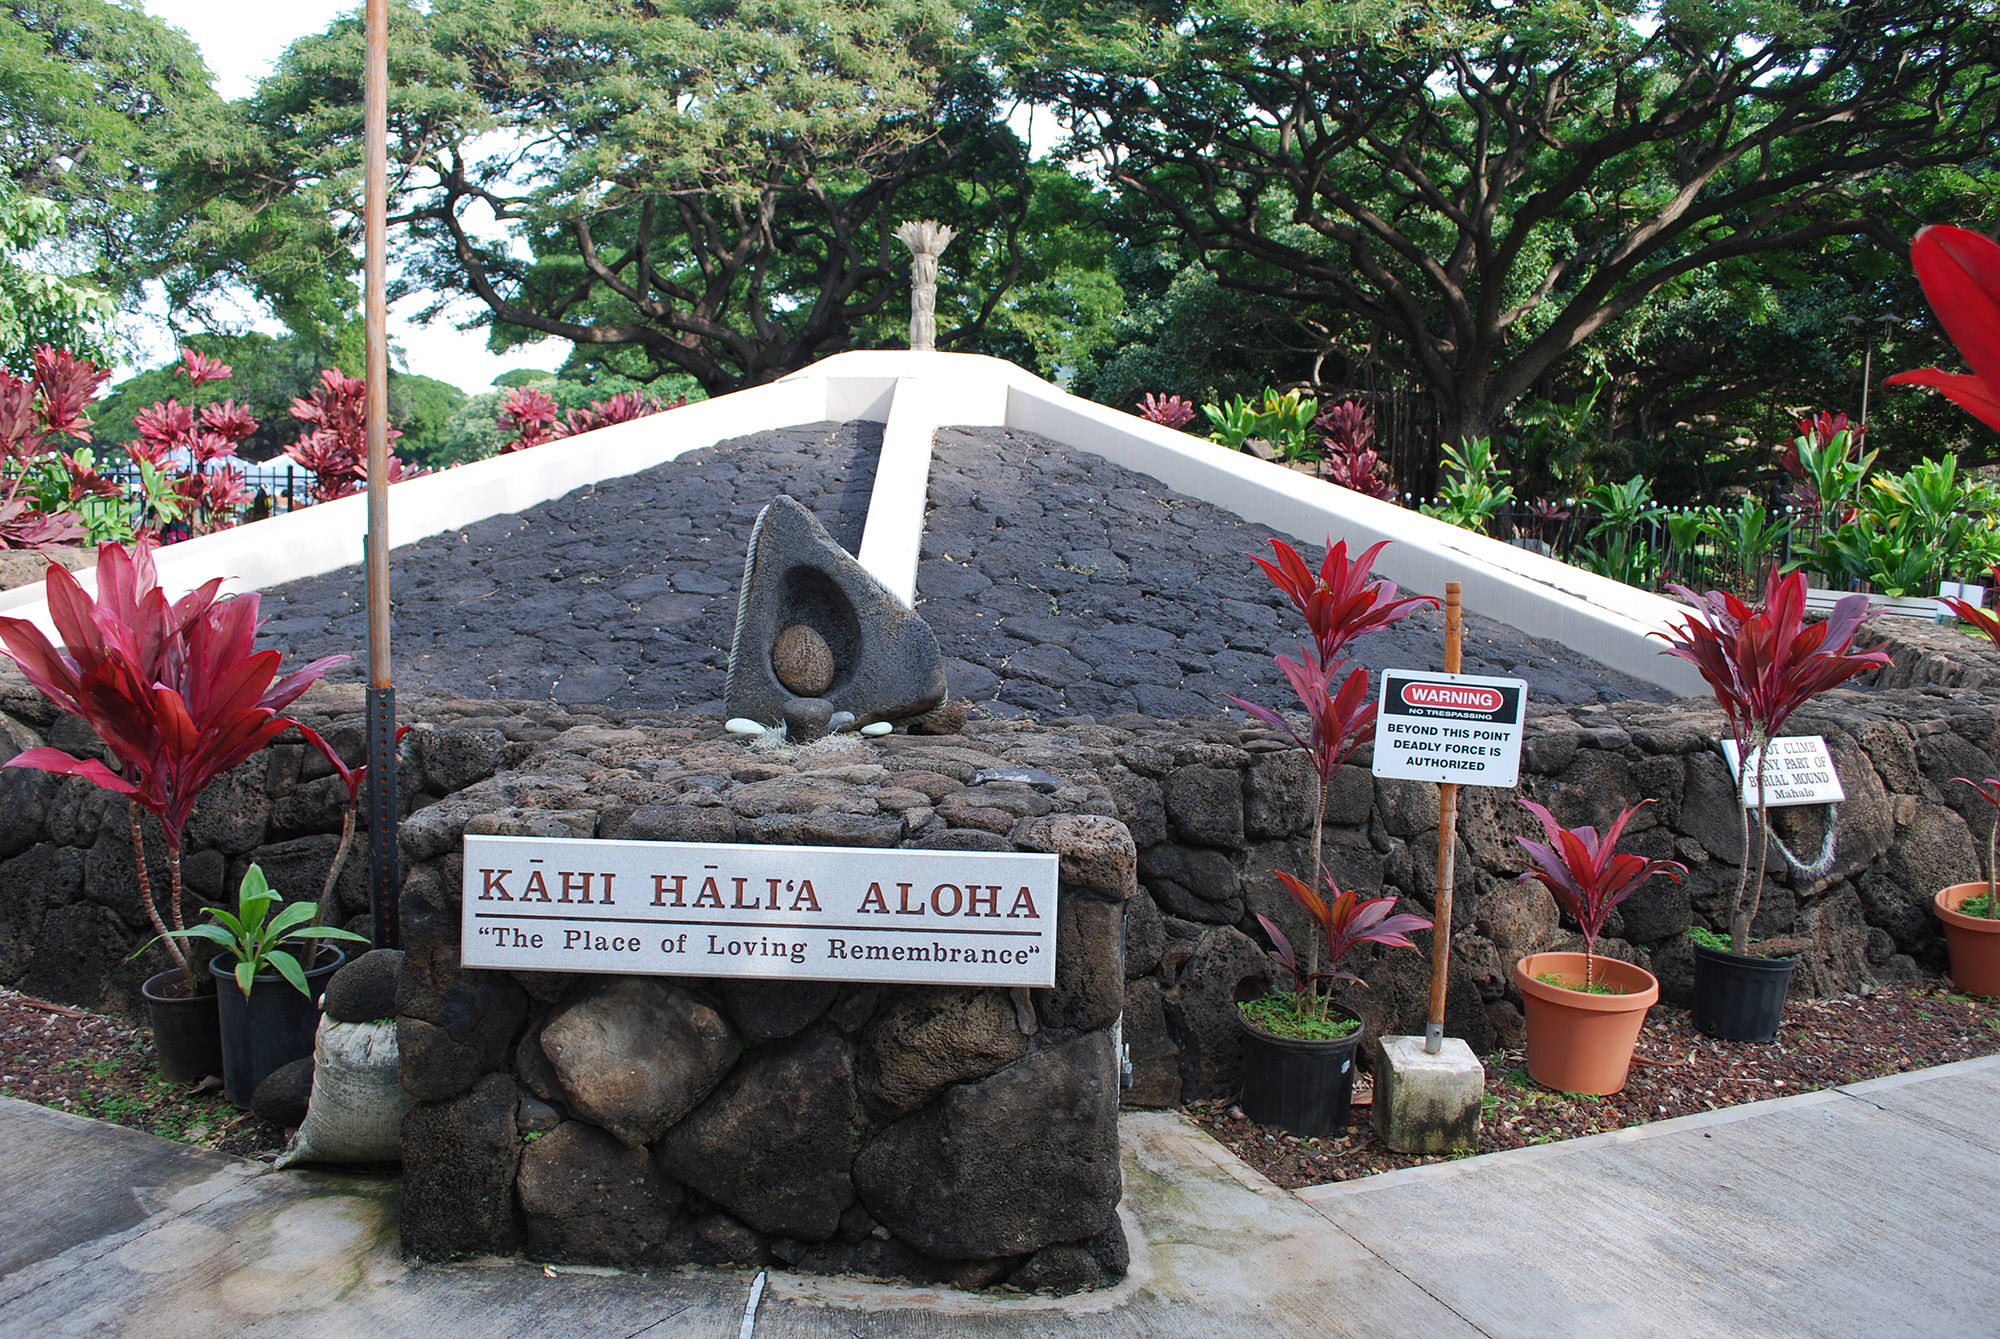 "Fig. 30 KĀHI HĀLIʻA ALOHA or Place of Loving Remembrance, burial mound, Kapiʻolani Park, Waikīkī, Oʻahu, showing signage bearing the words ""WARNING: BEYOND THIS POINT DEADLY FORCE IS AUTHORIZED,"" February 2014. Photo: ©Sally Promey"